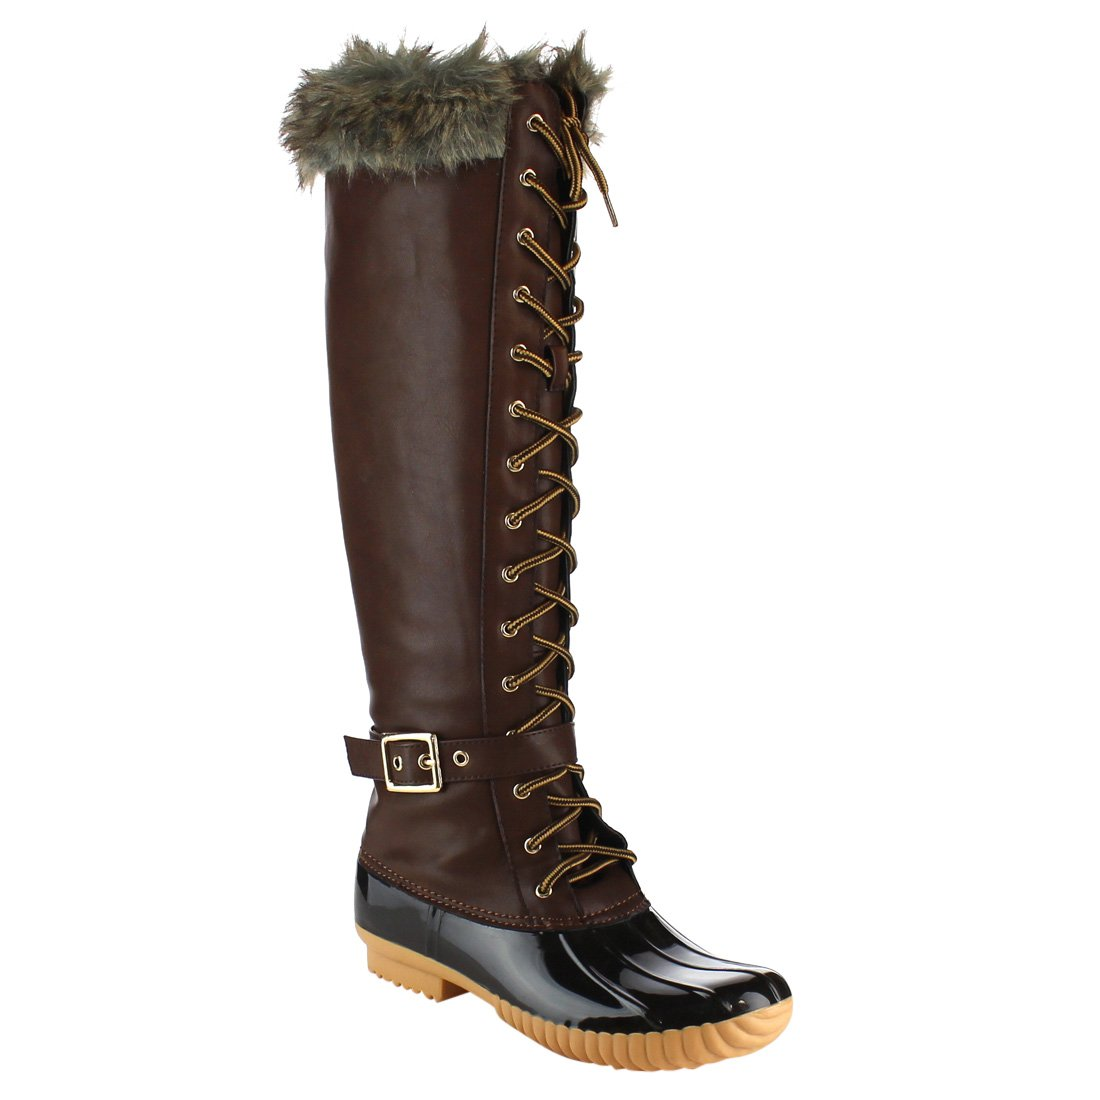 Nature Breeze FF70 Women's Knee High Lace Up Insulated Boots Half Size Small B01MDTPDGS 6 B(M) US|Brown